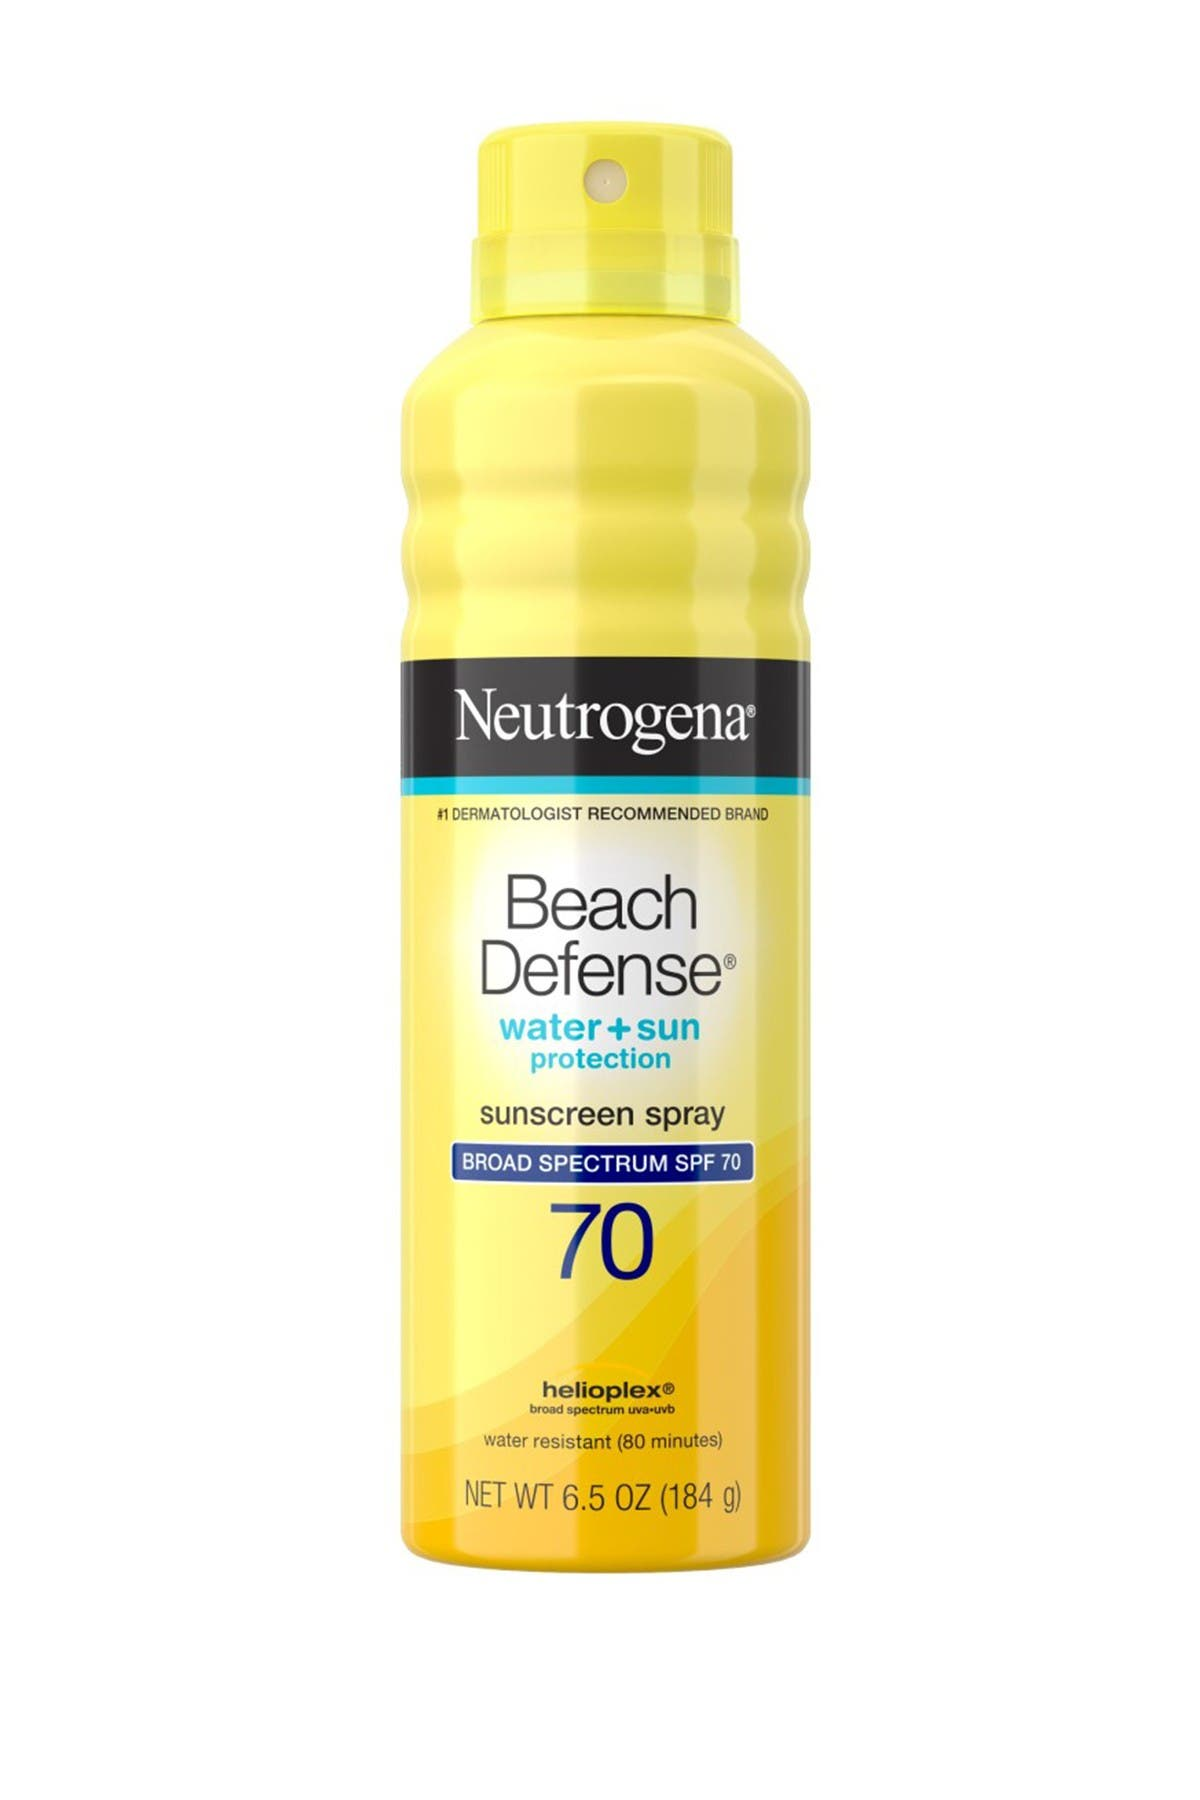 Image of Neutrogena Beach Defense Water+Sun Protection SPF 70 Sunscreen Spray